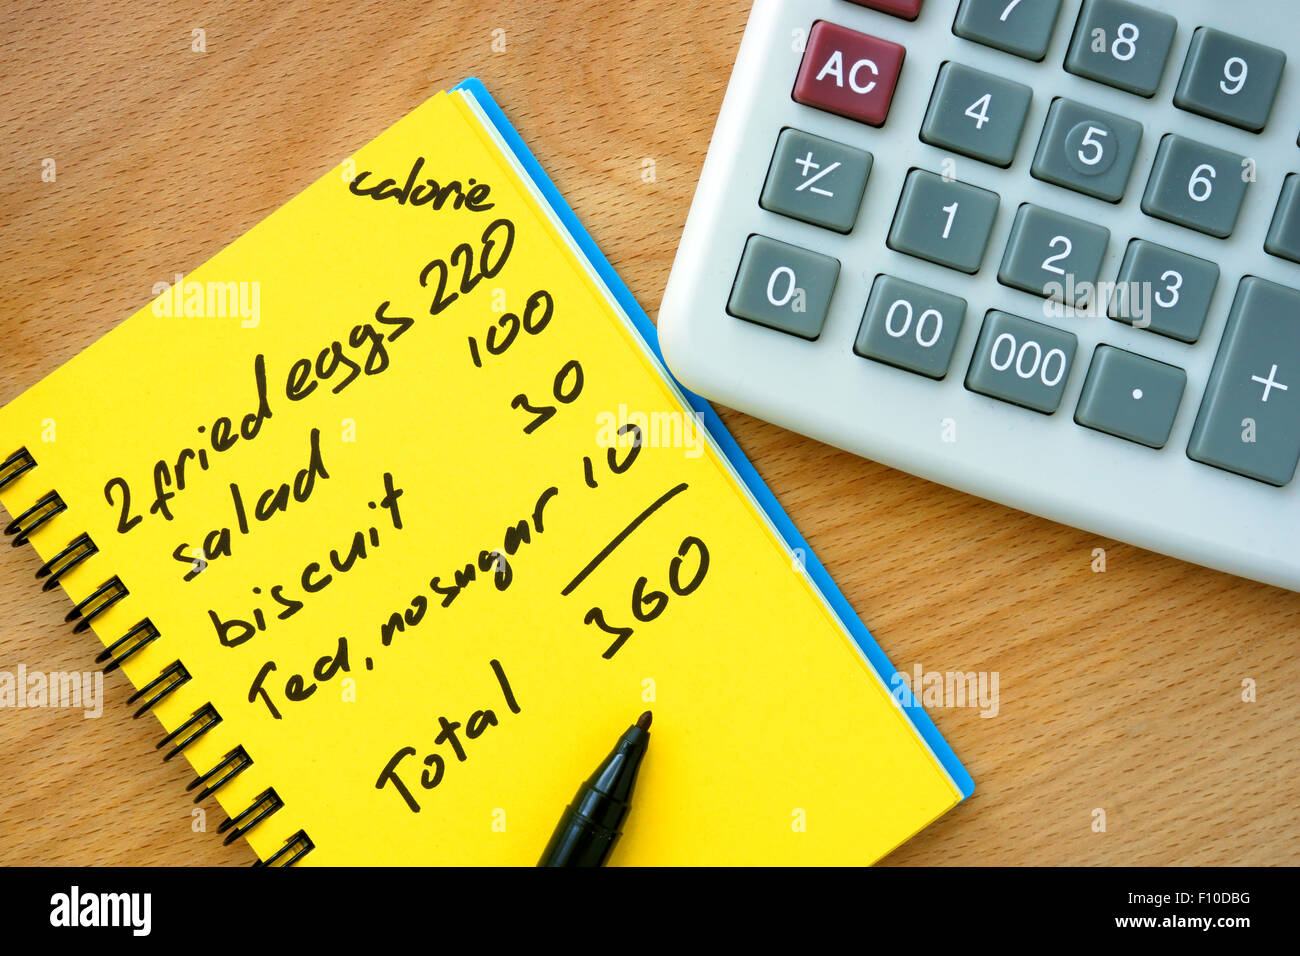 Food Calorie Calculator Stock Photos Food Calorie Calculator Stock